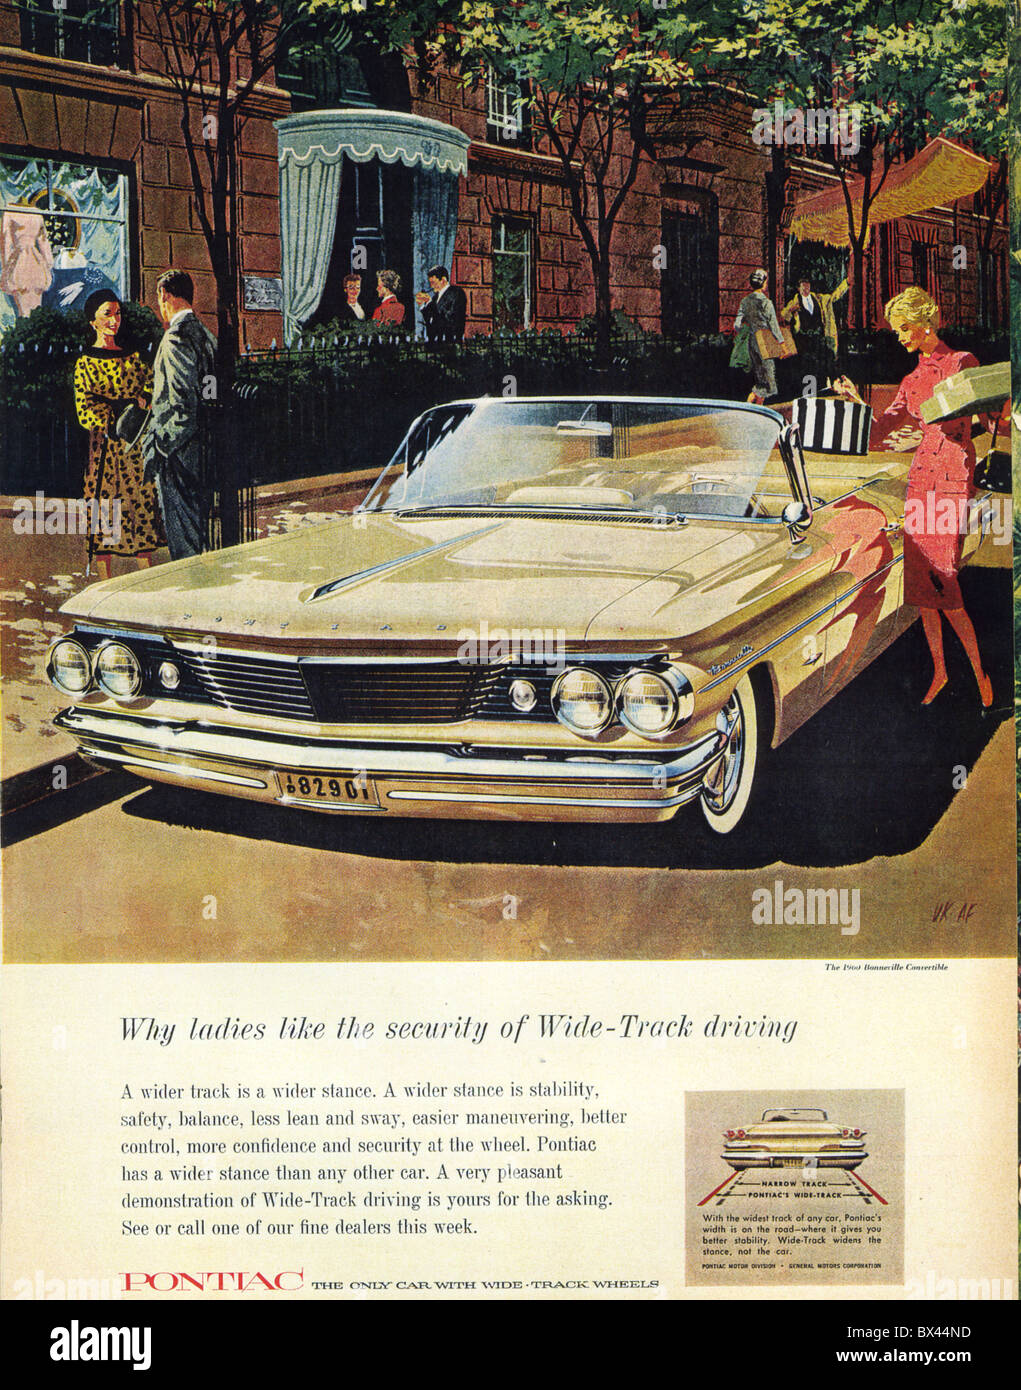 1960 PONTIAC CONVERTIBLE advert - Stock Image